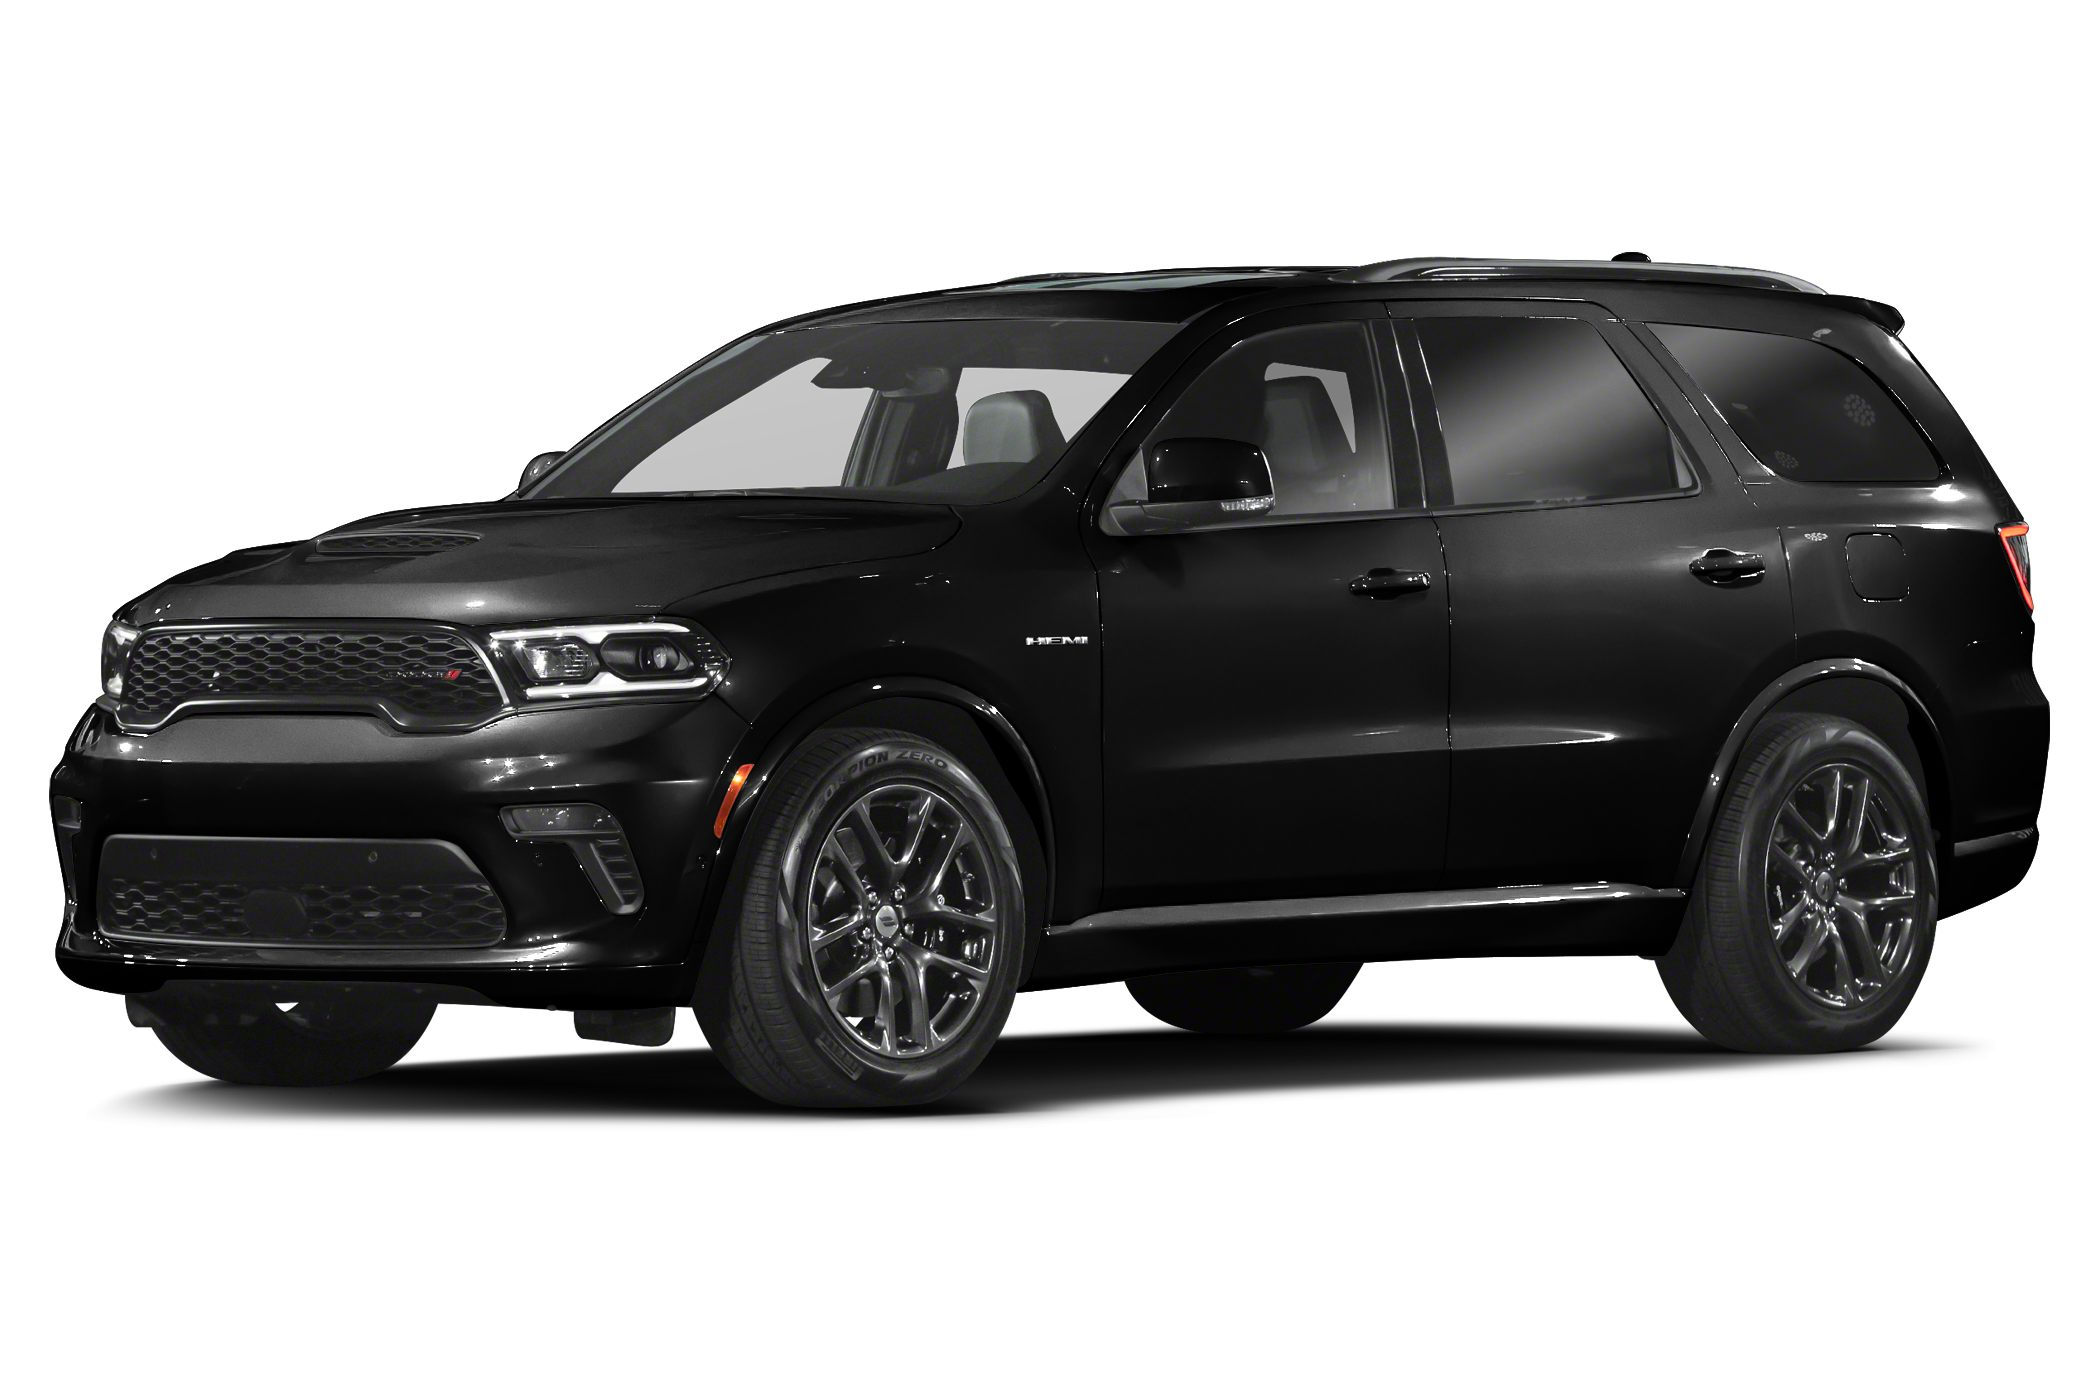 2021 Dodge Durango Srt 392 4dr All Wheel Drive Specs And Prices